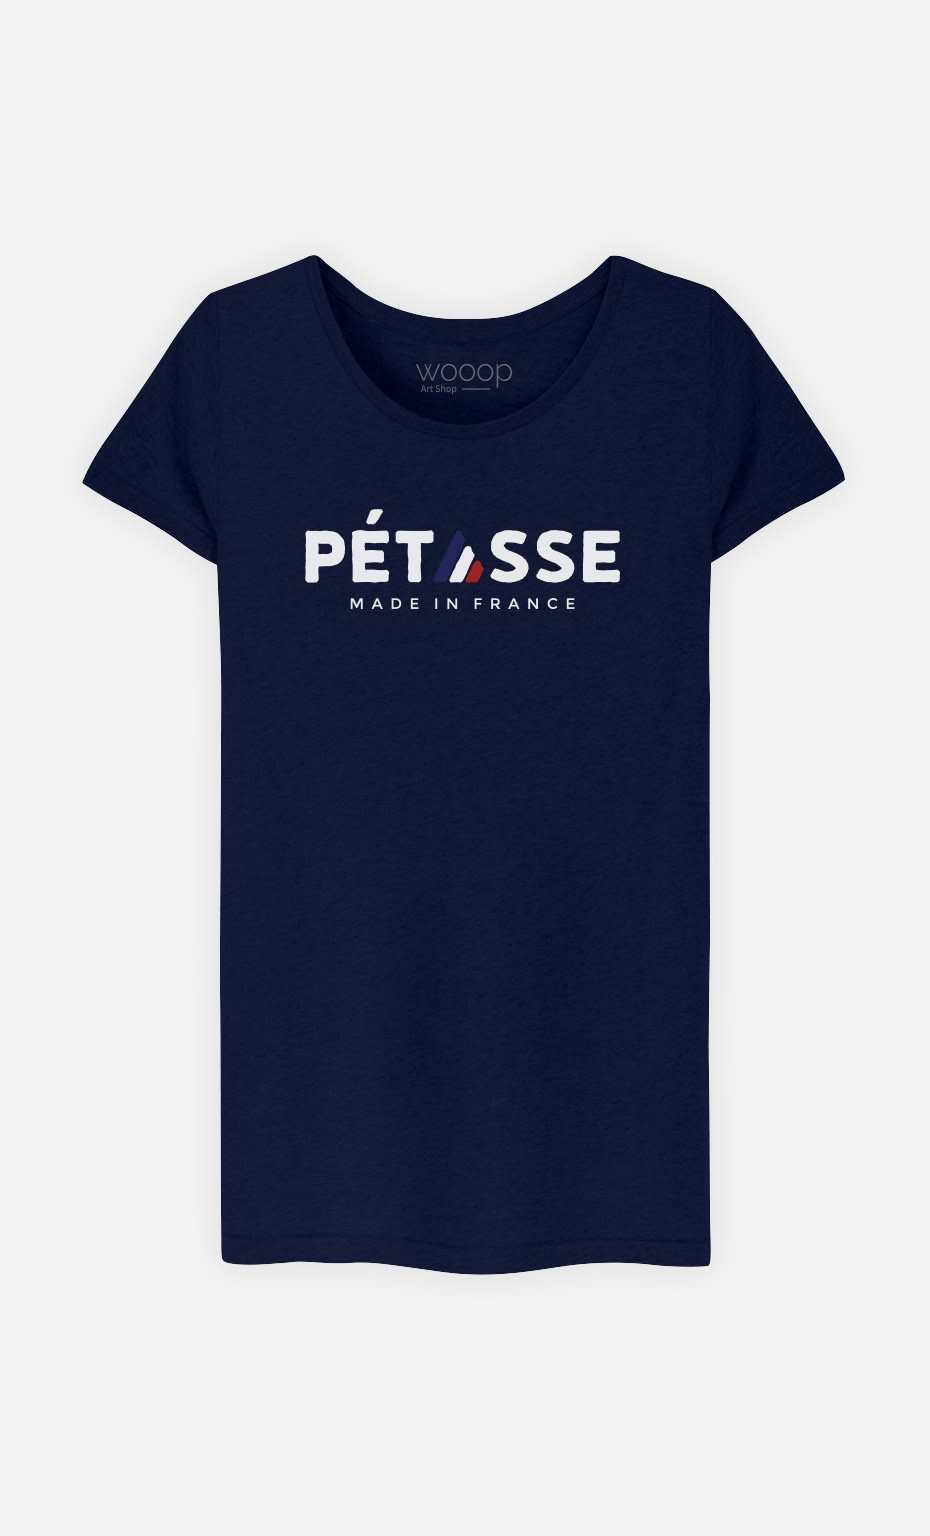 T-Shirt Pétasse Made in France